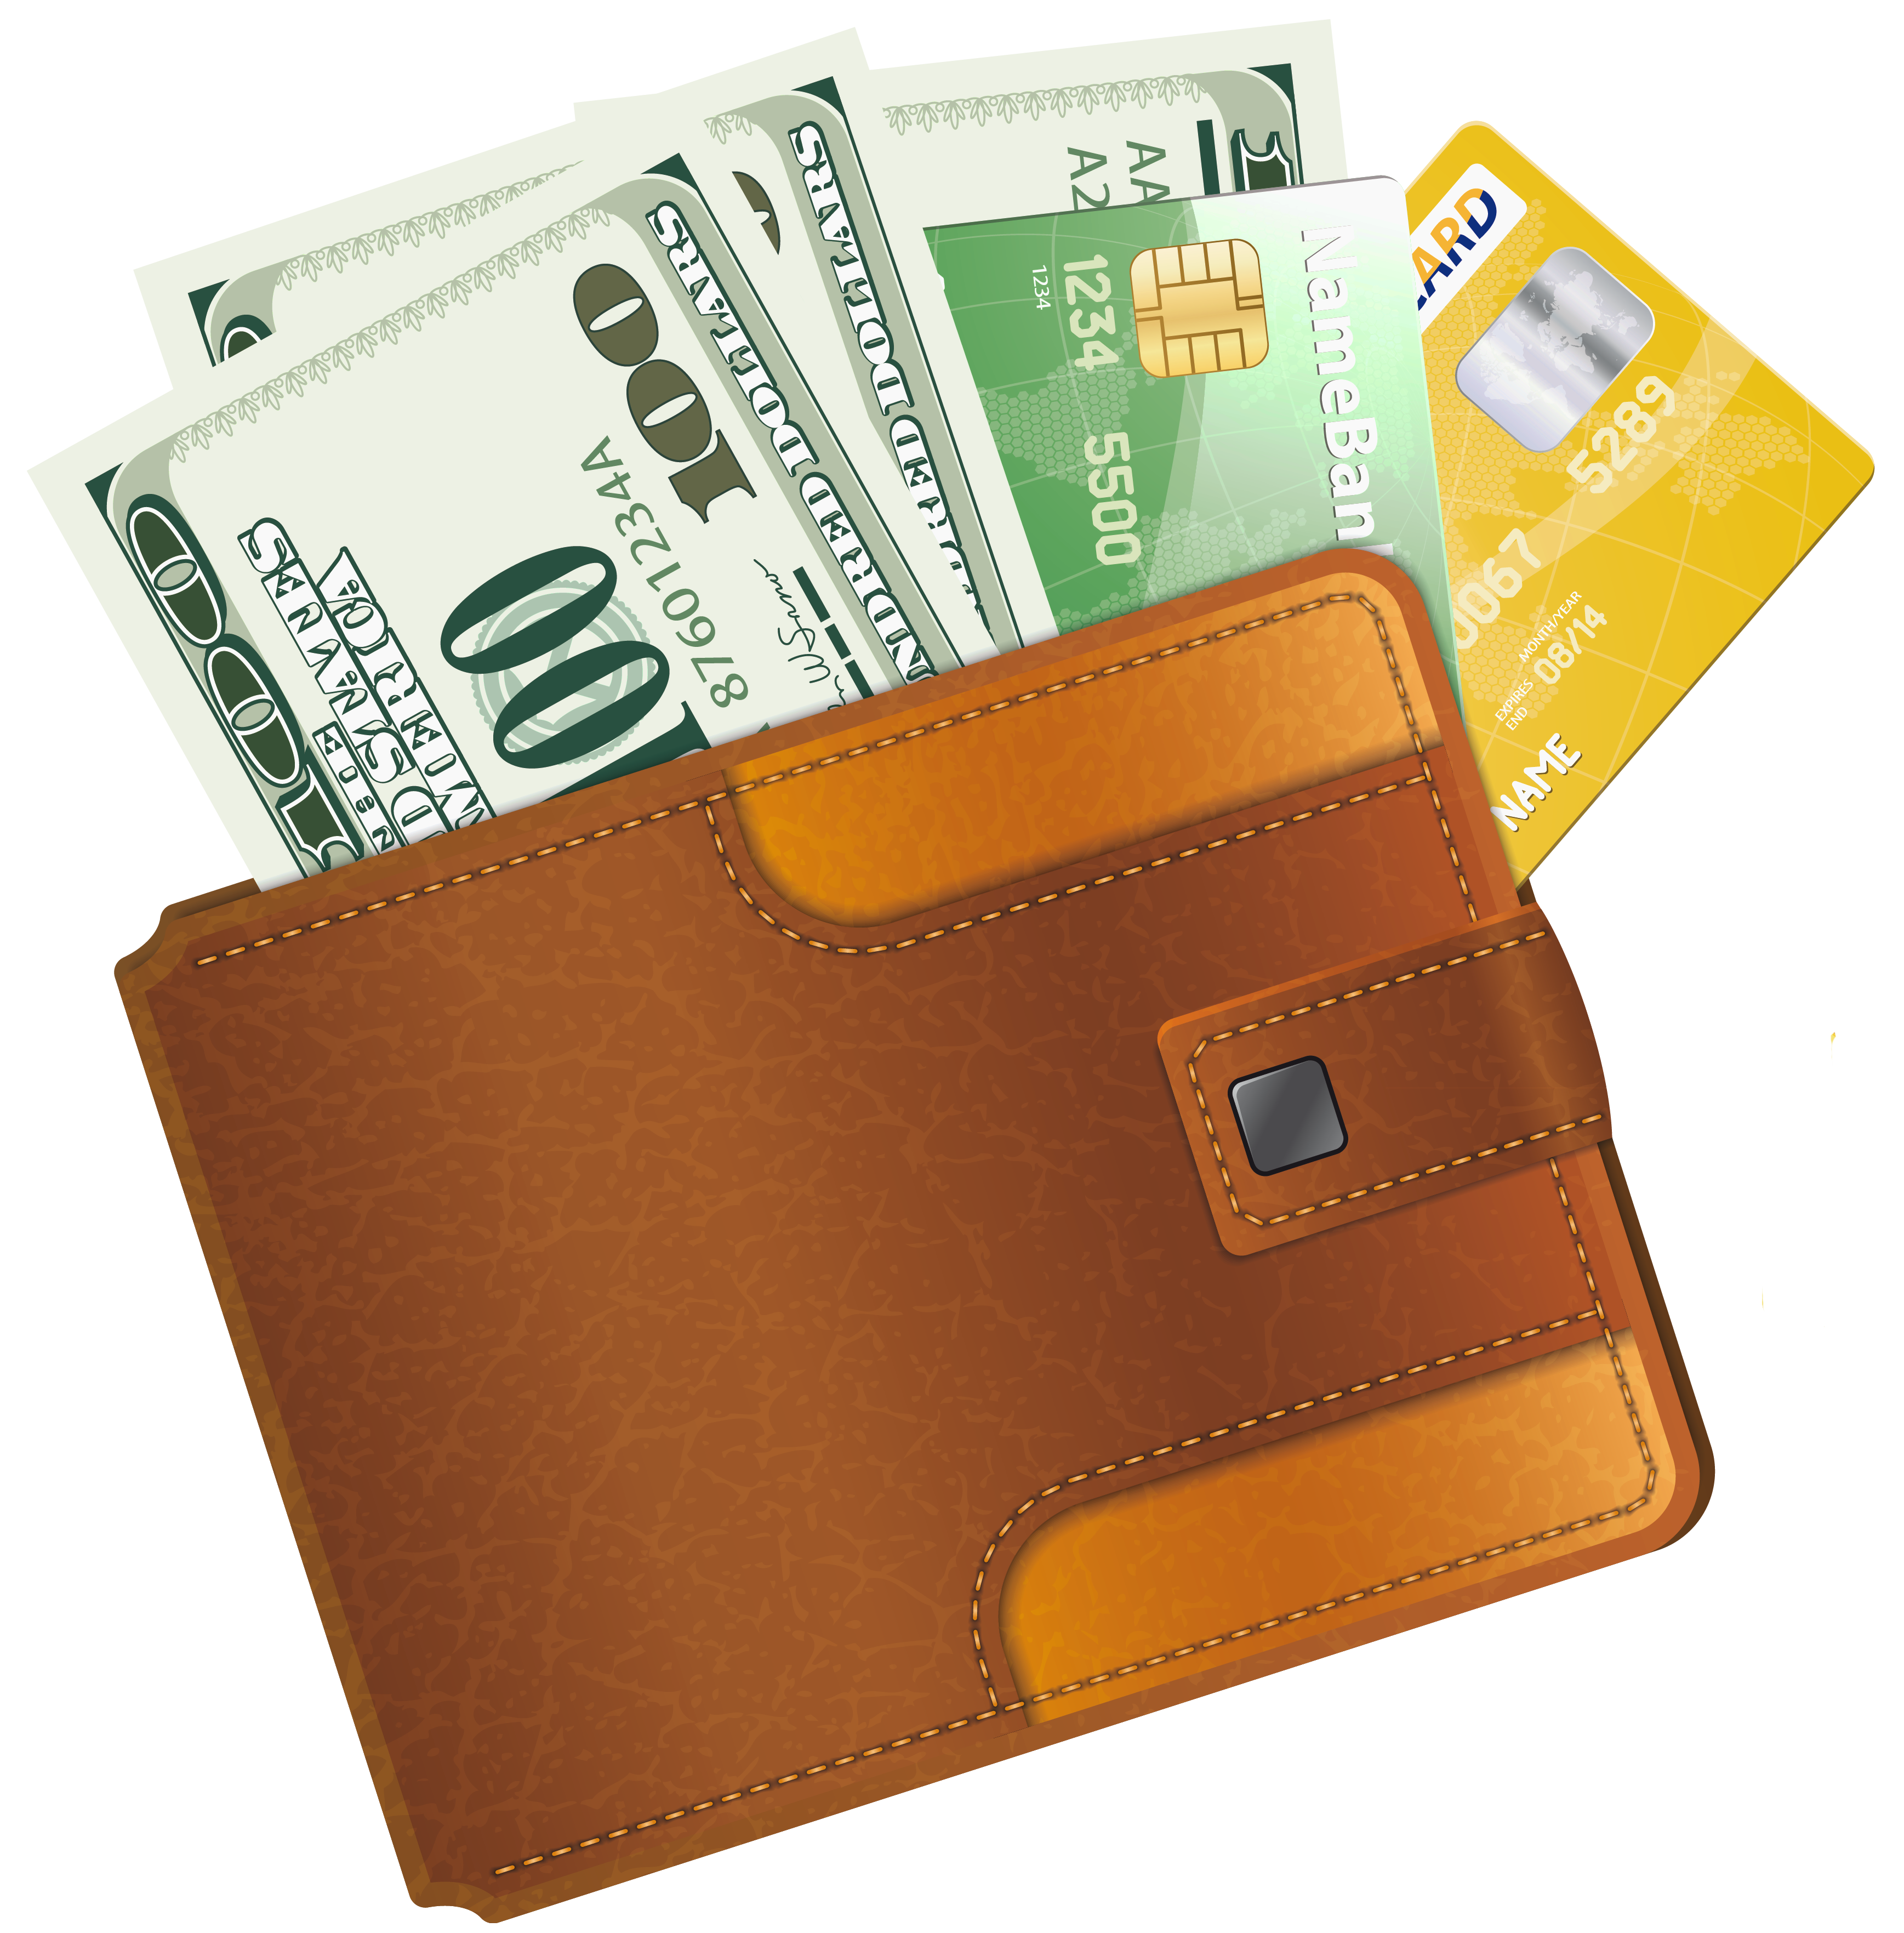 Wallet clipart free.